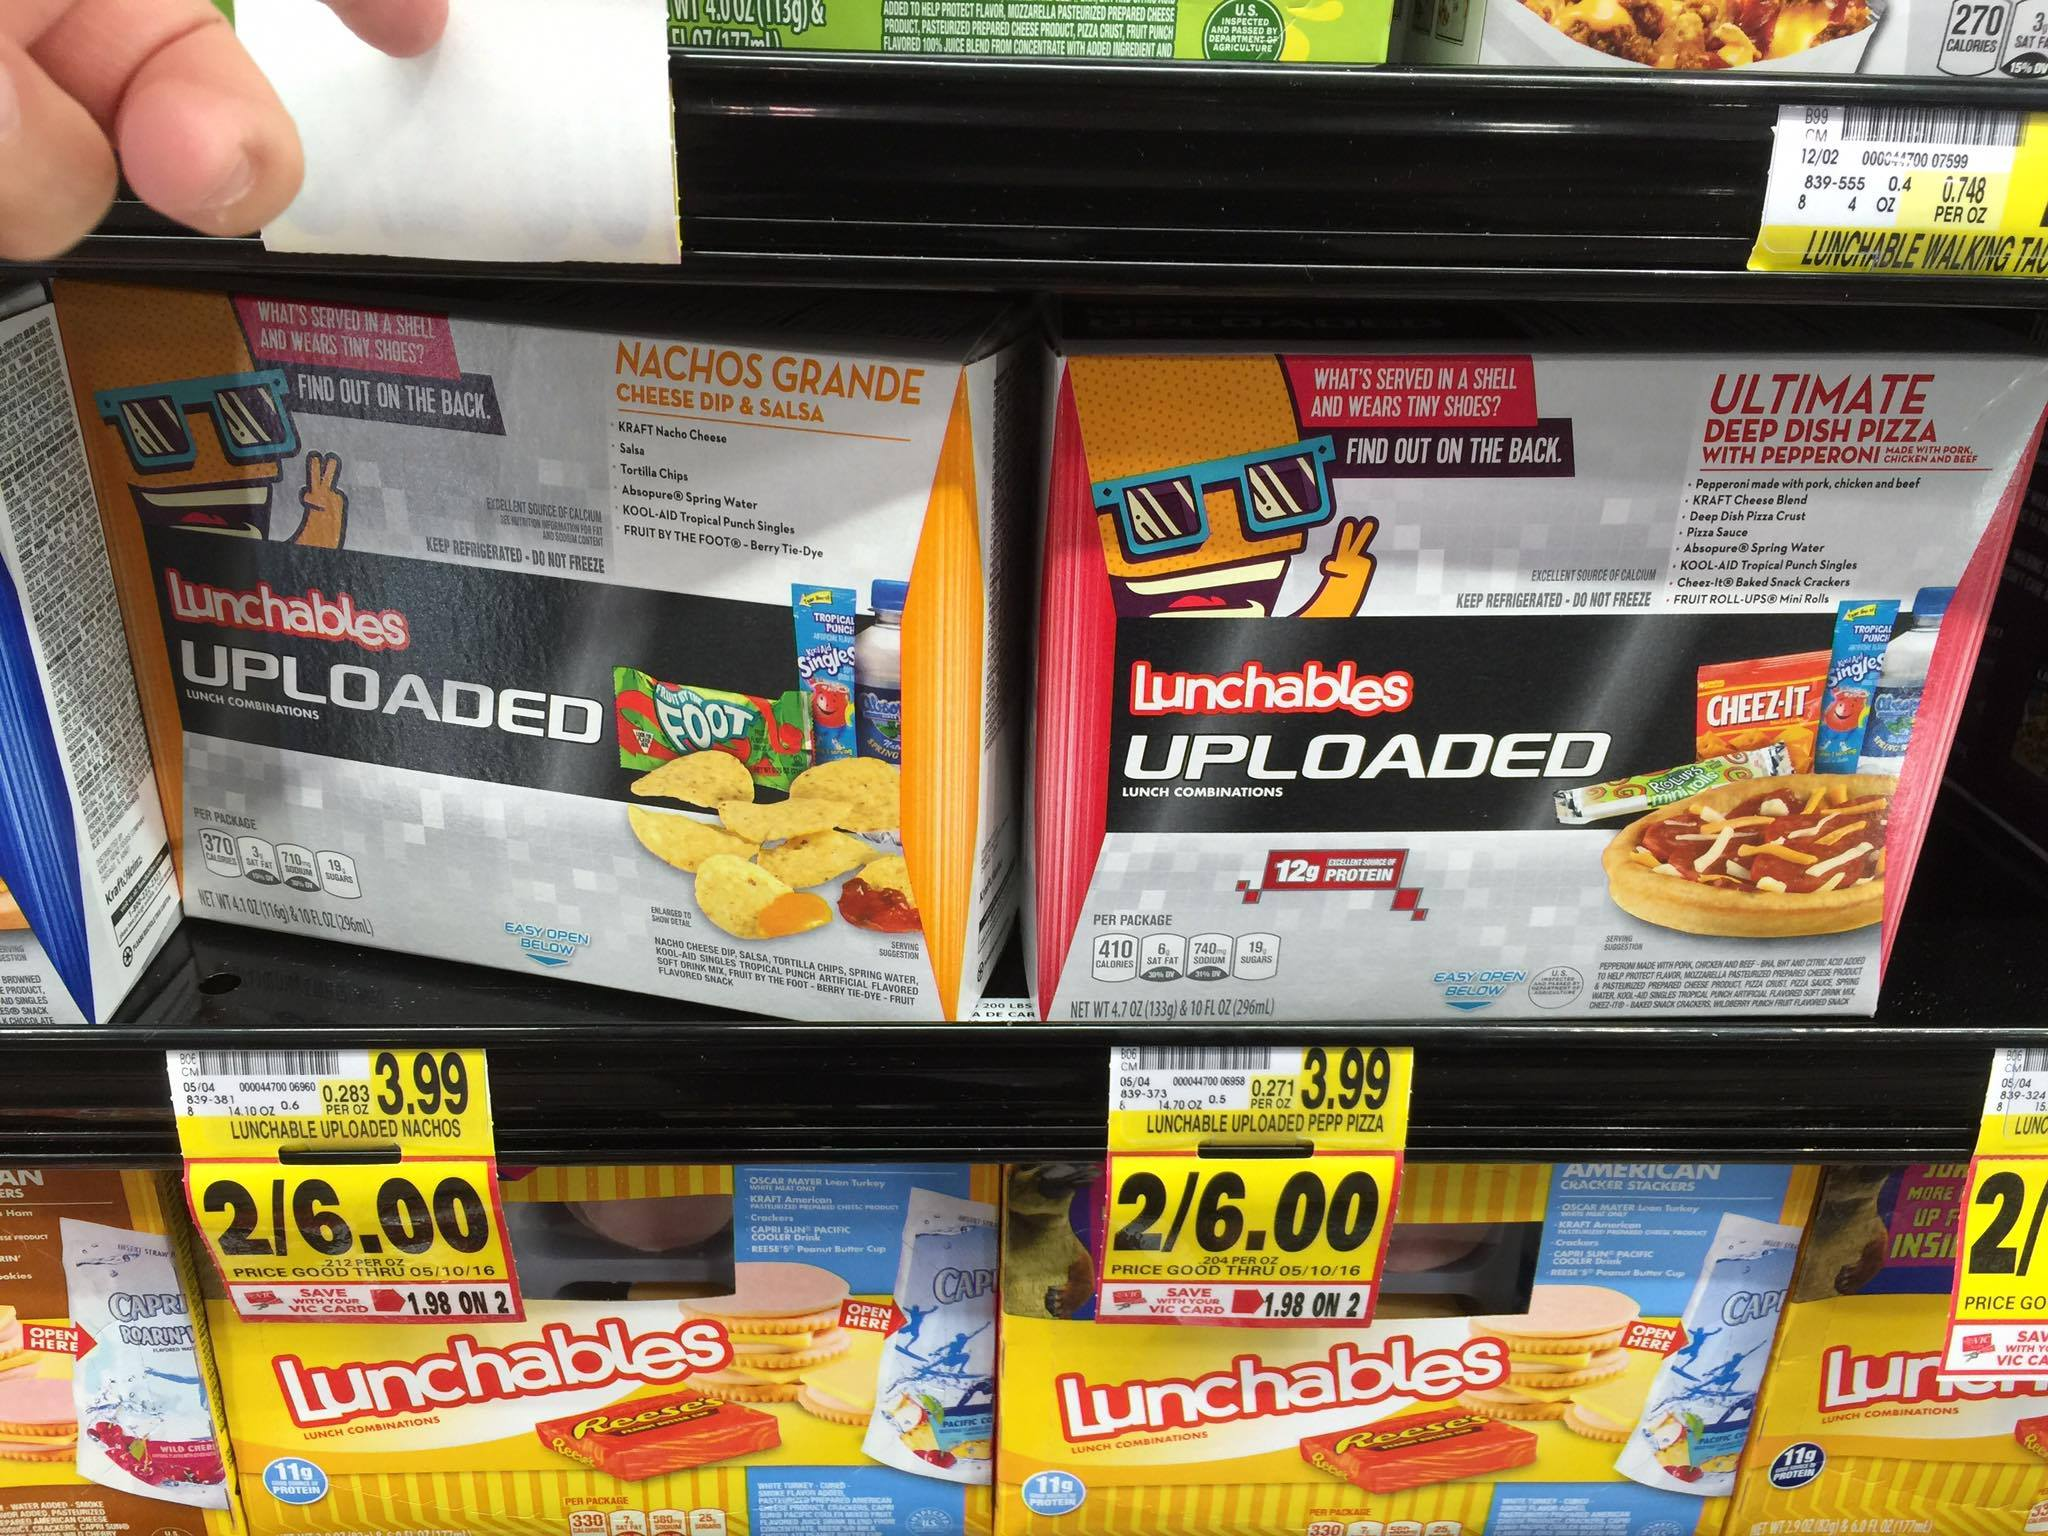 211565 Oscar Mayer Hot Dogs besides Lunch Uploaded together with A 16601459 further 1 Off 1 Lunchables Coupon Other High Value Coupons as well Kraft Trios And Basic Lunchables Only 0 70 More Deals Stop Shop Giant And Martin No Coupons Needed. on oscar mayer lunchables coupons